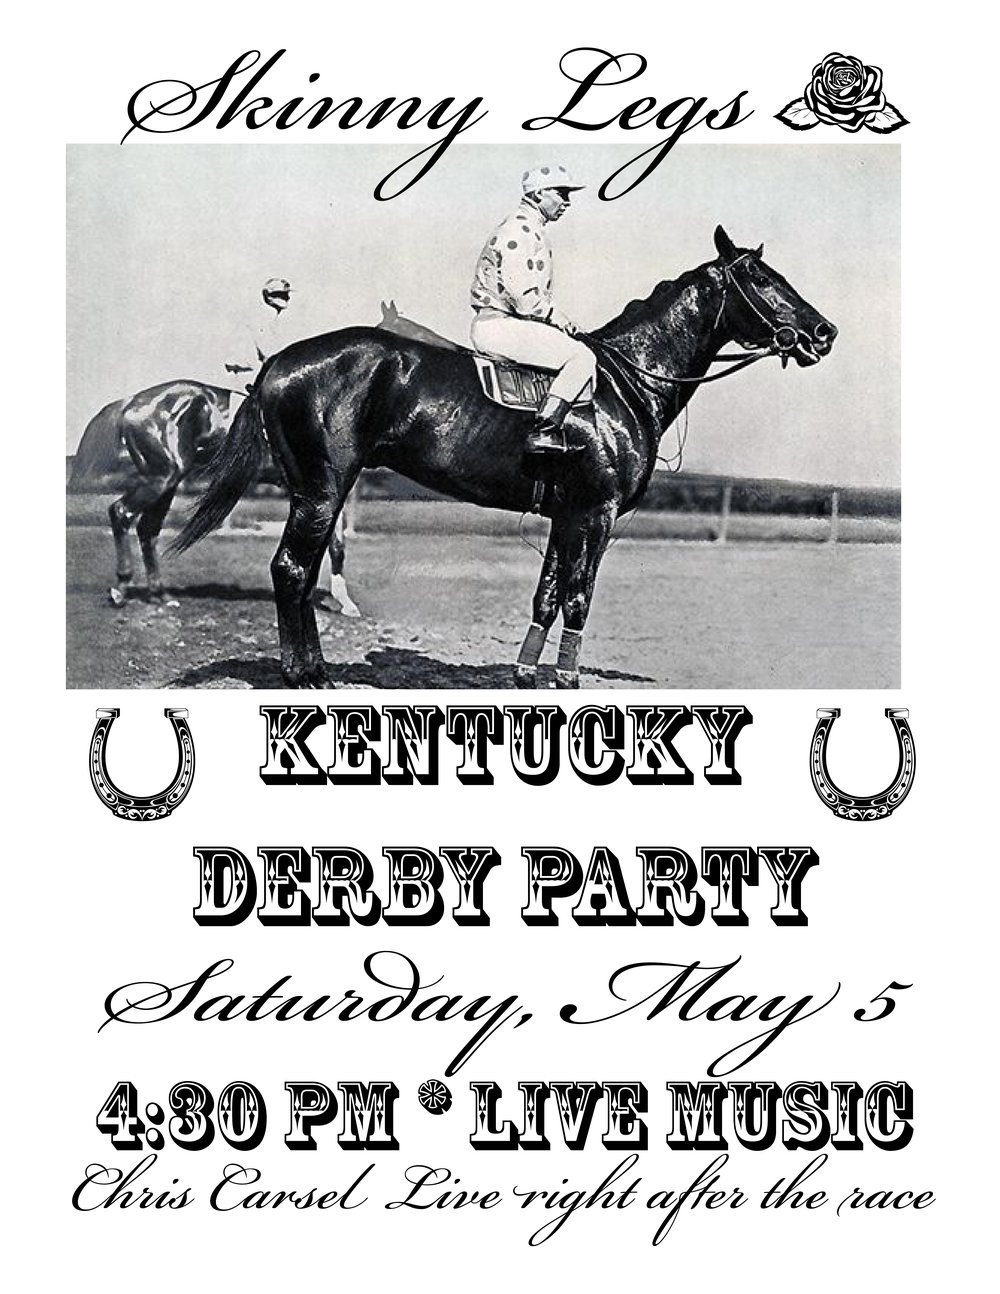 kentucky derby_9.jpg